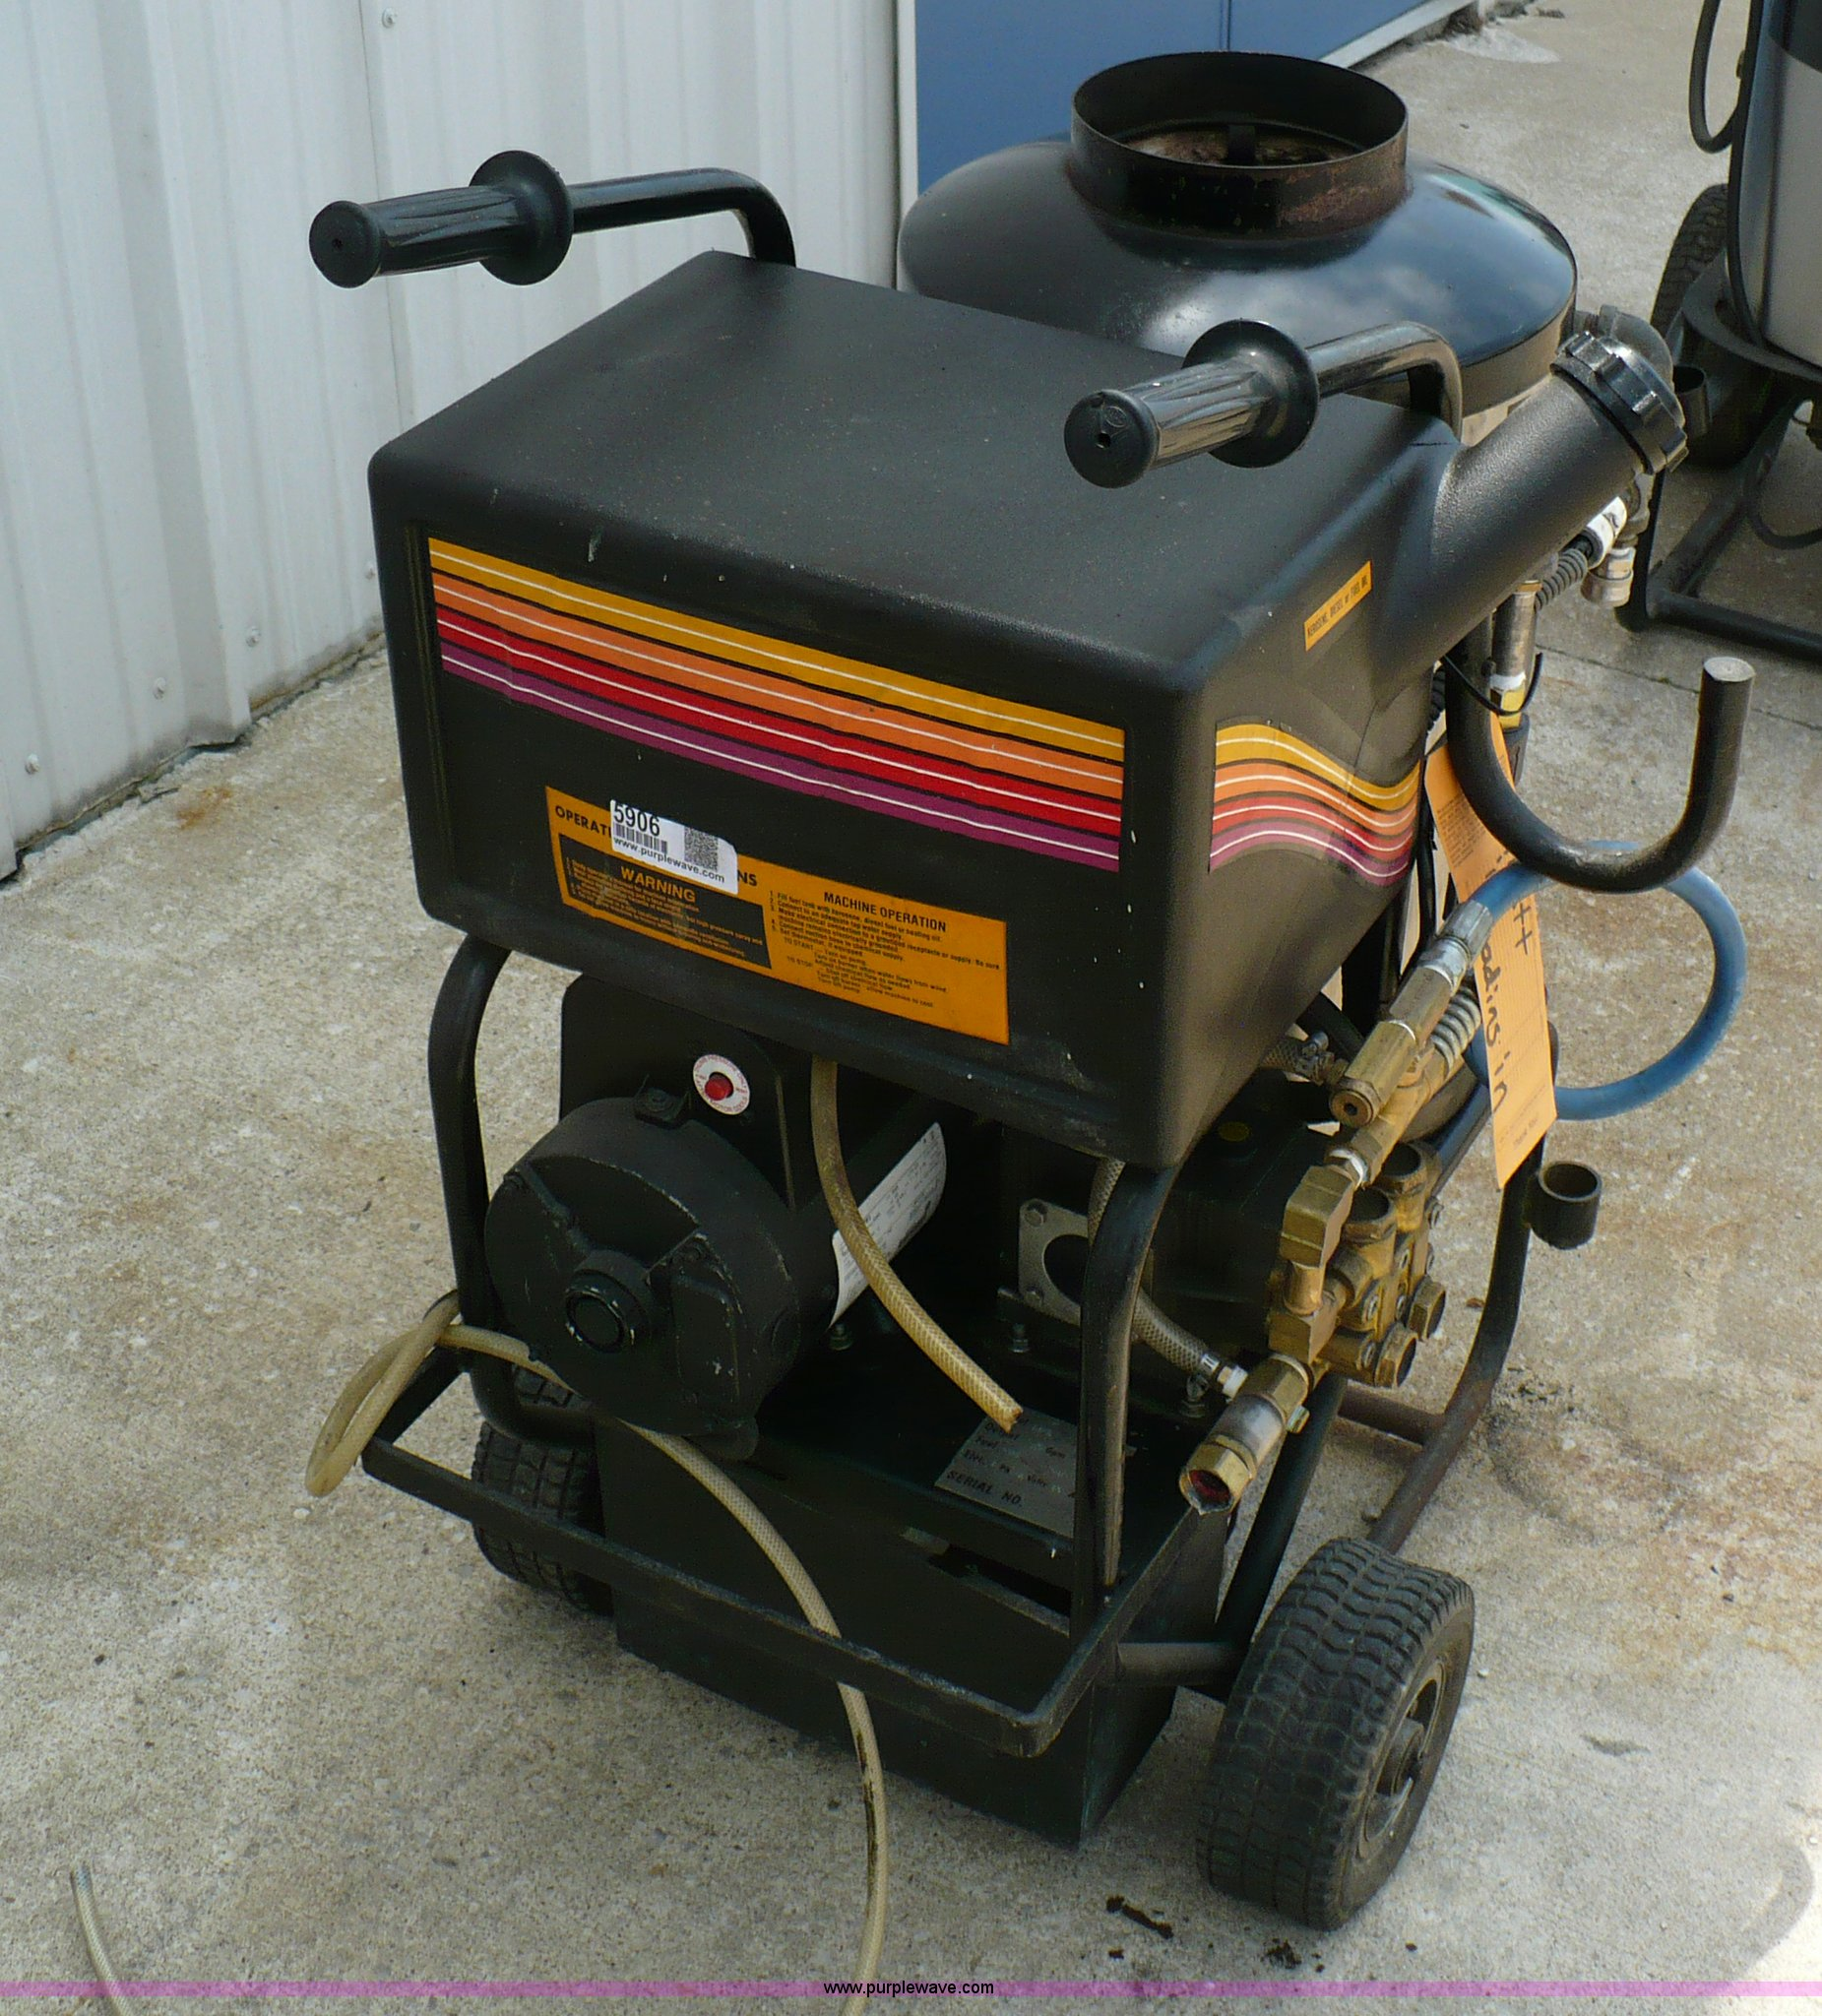 5906C aaladin 1321 cleaning systems pressure steam washer item 5 aaladin pressure washer wiring diagram at aneh.co